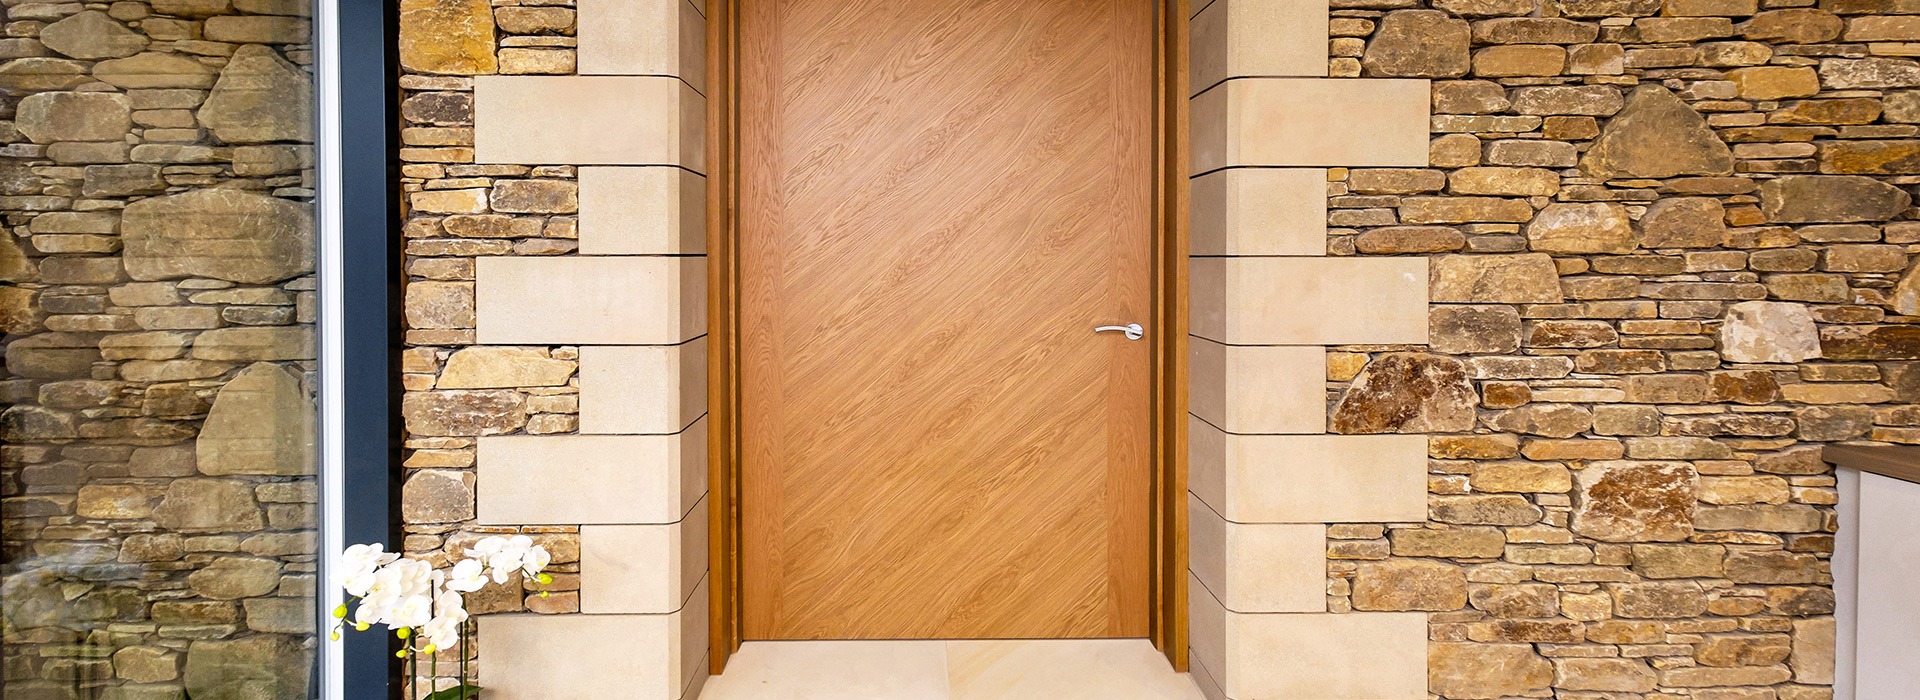 Miami internal doors